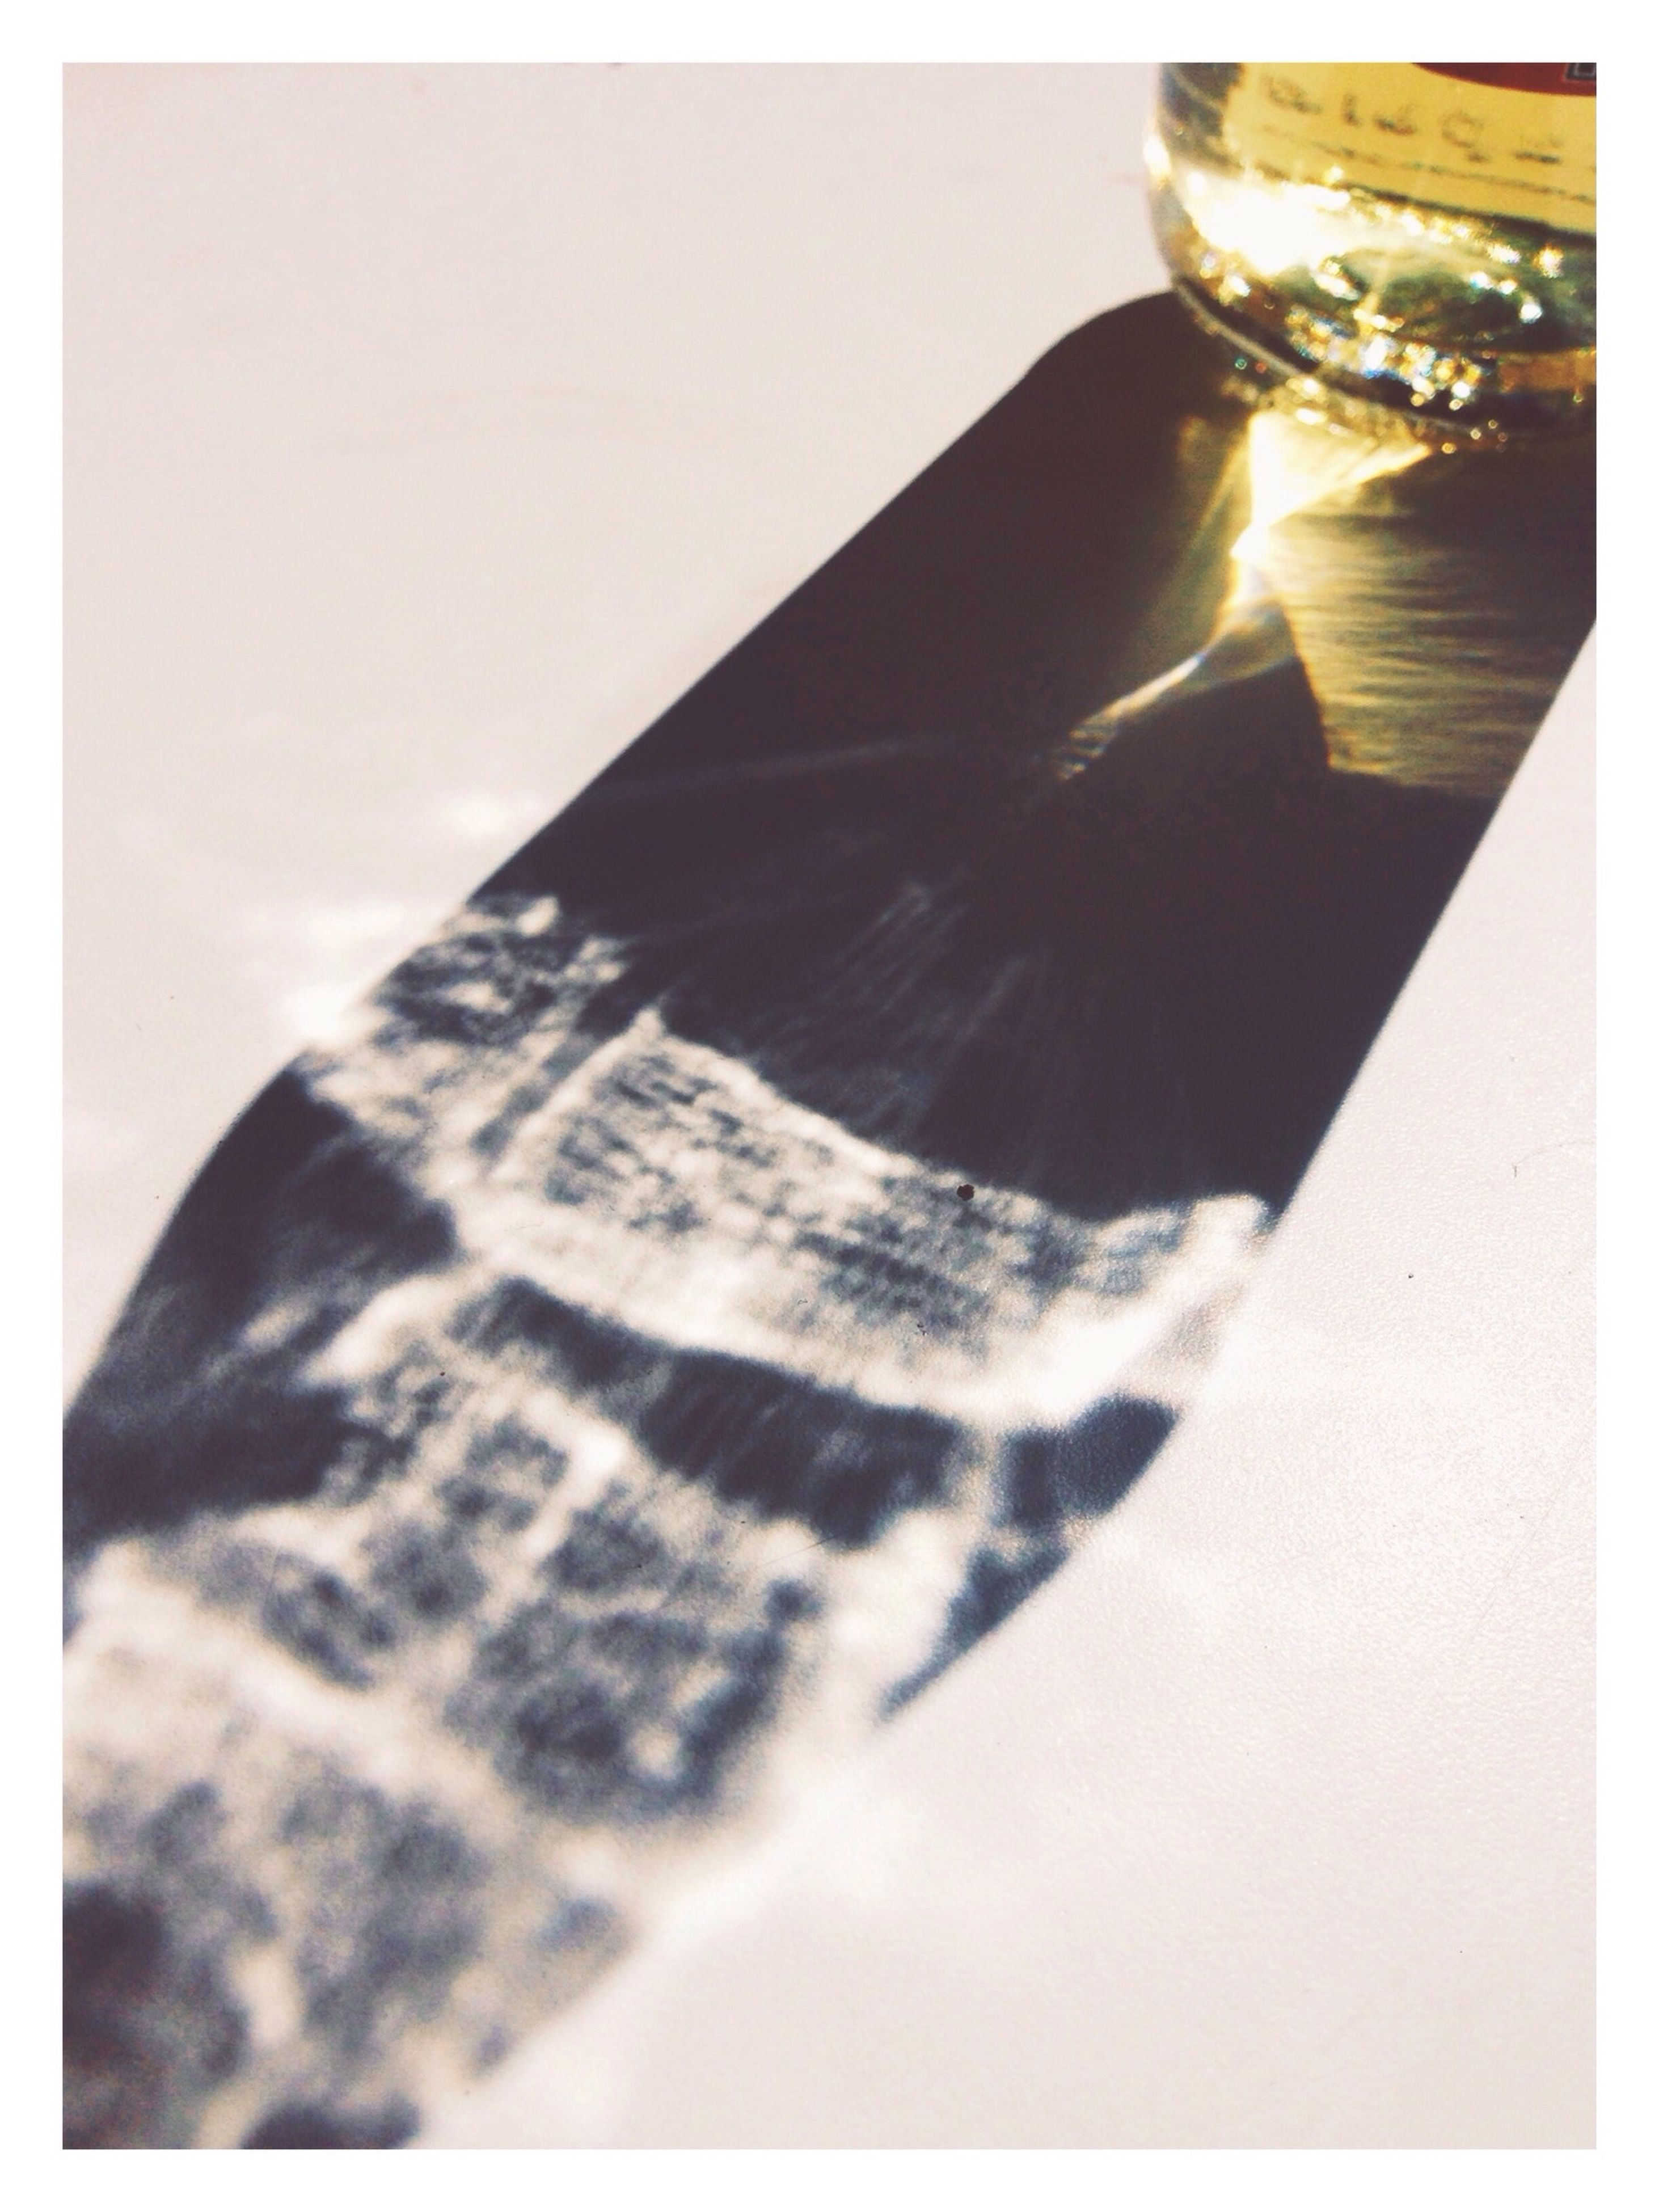 transfer print, auto post production filter, indoors, close-up, sunlight, shadow, single object, no people, still life, part of, selective focus, lens flare, day, high angle view, pattern, low angle view, cropped, copy space, focus on foreground, sunbeam